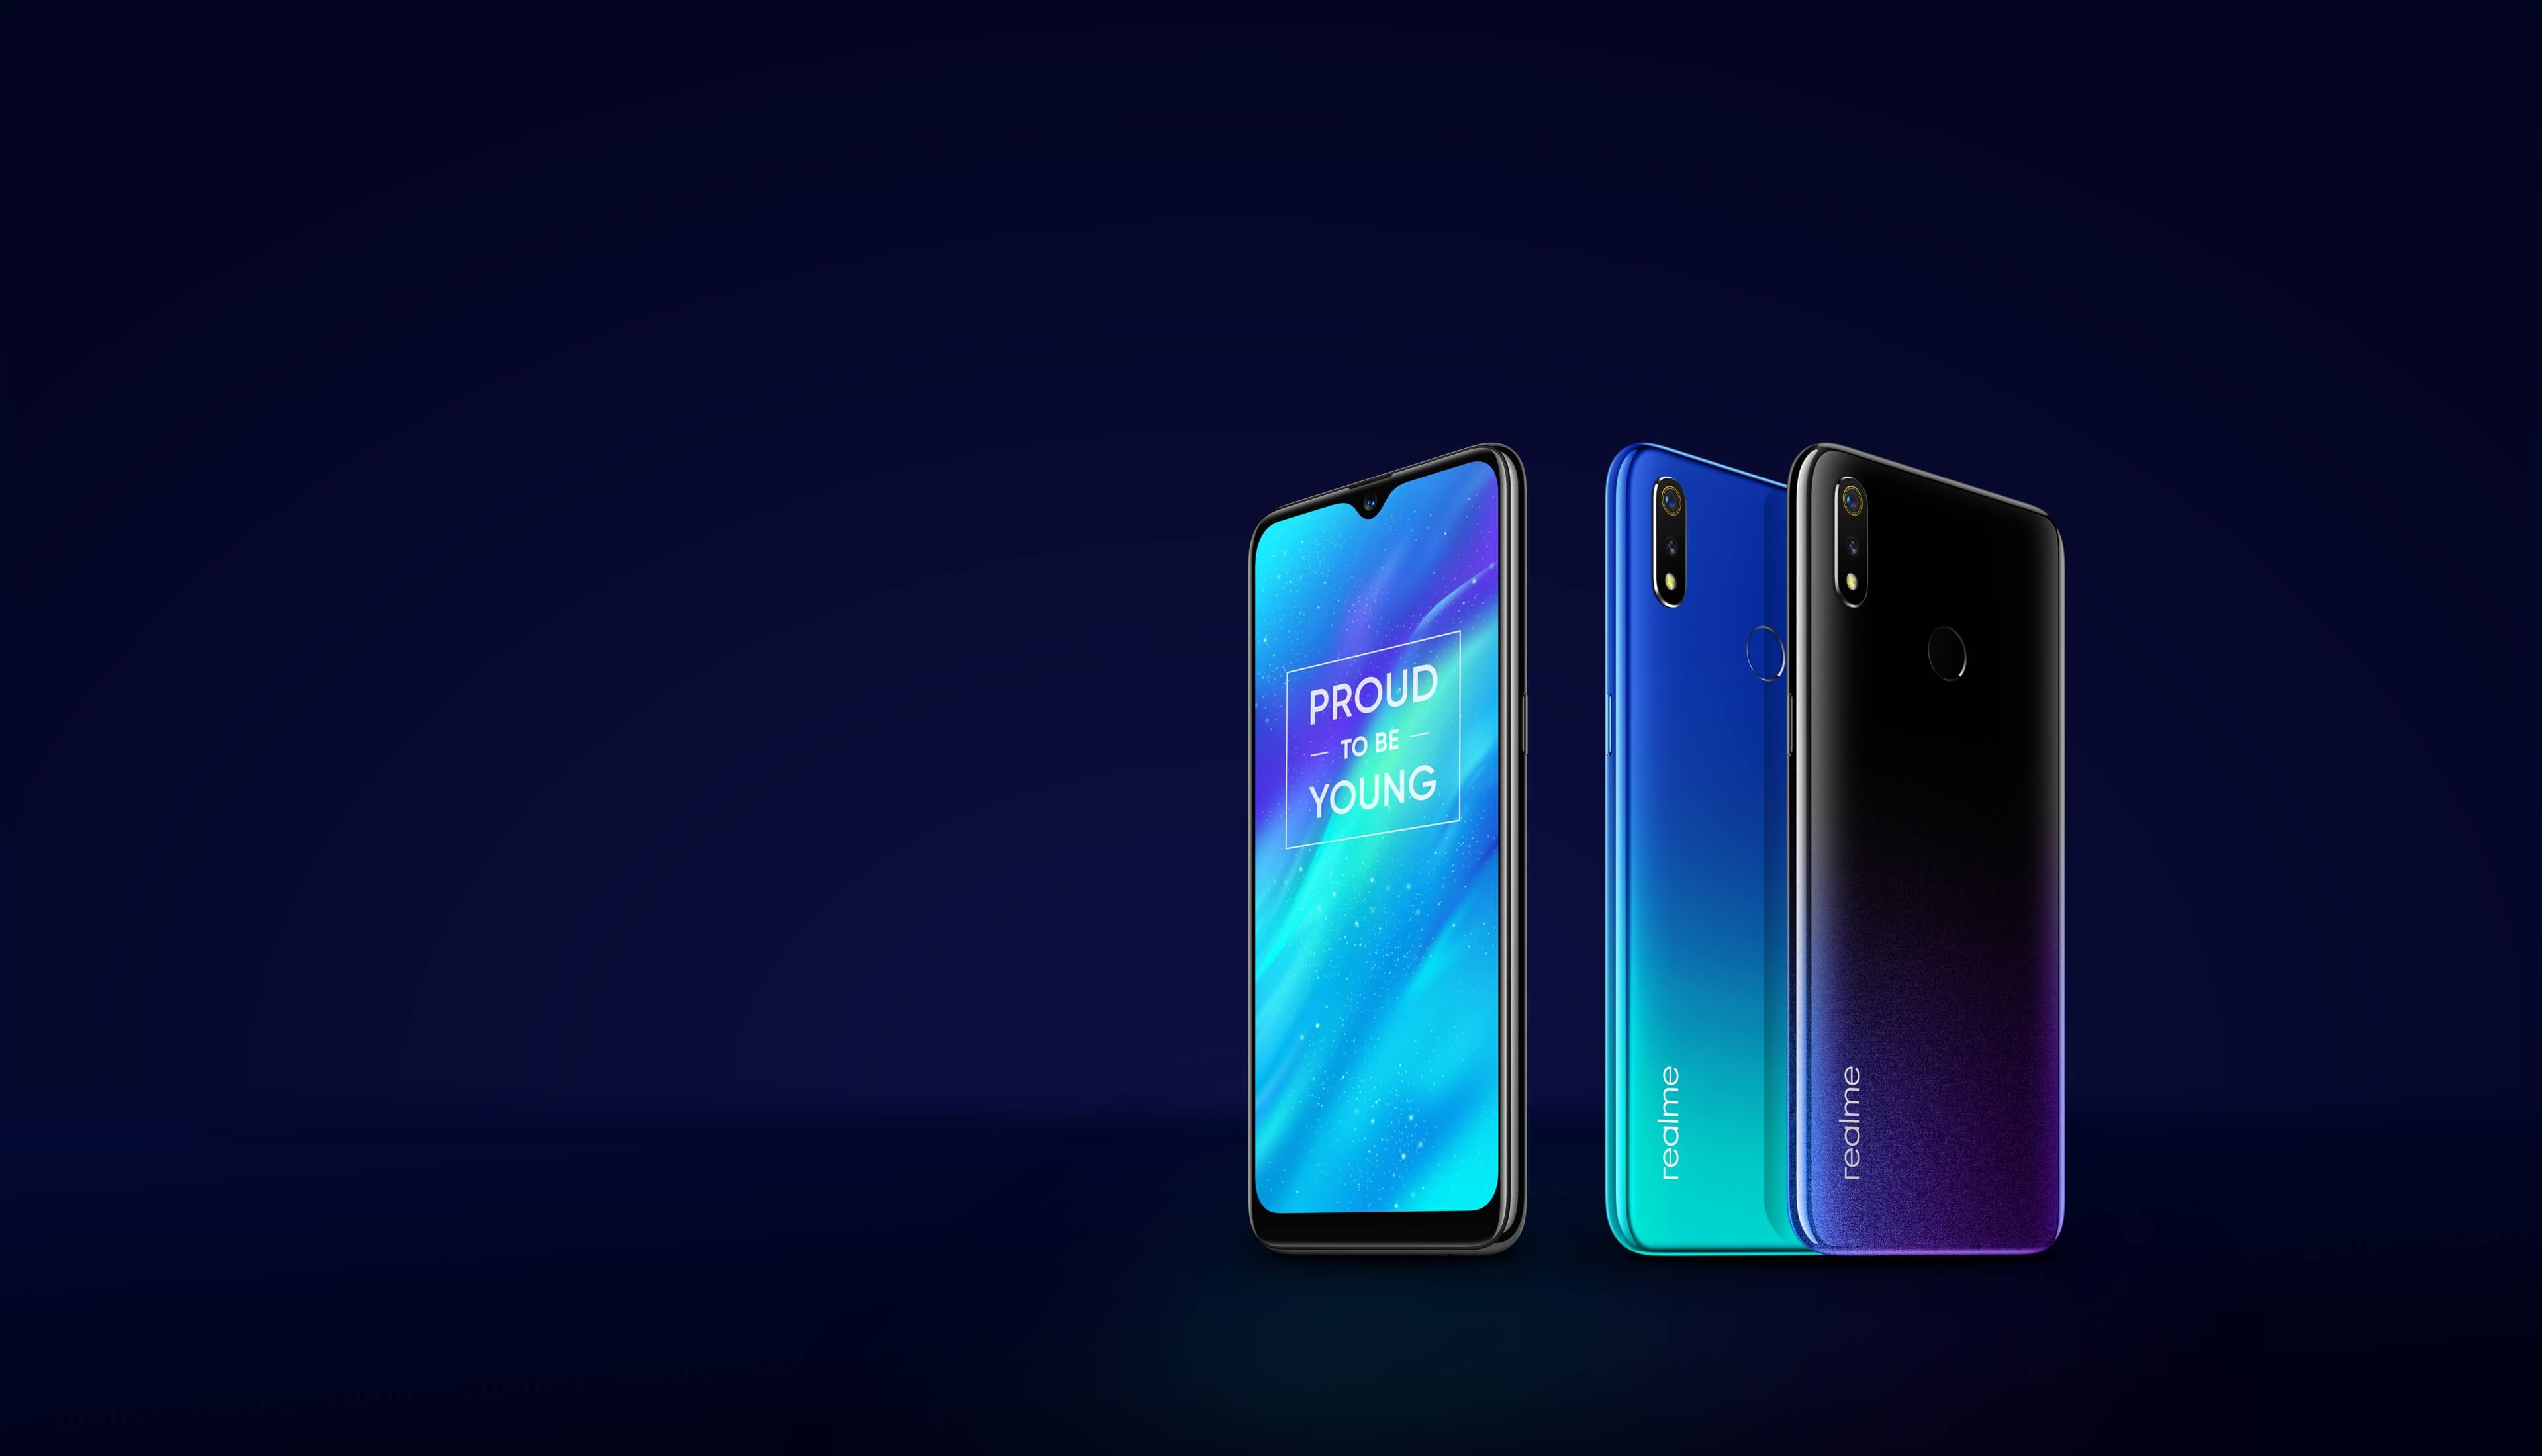 Alleged Realme 3 Pro Specifications Revealed - TheAndroidPortal